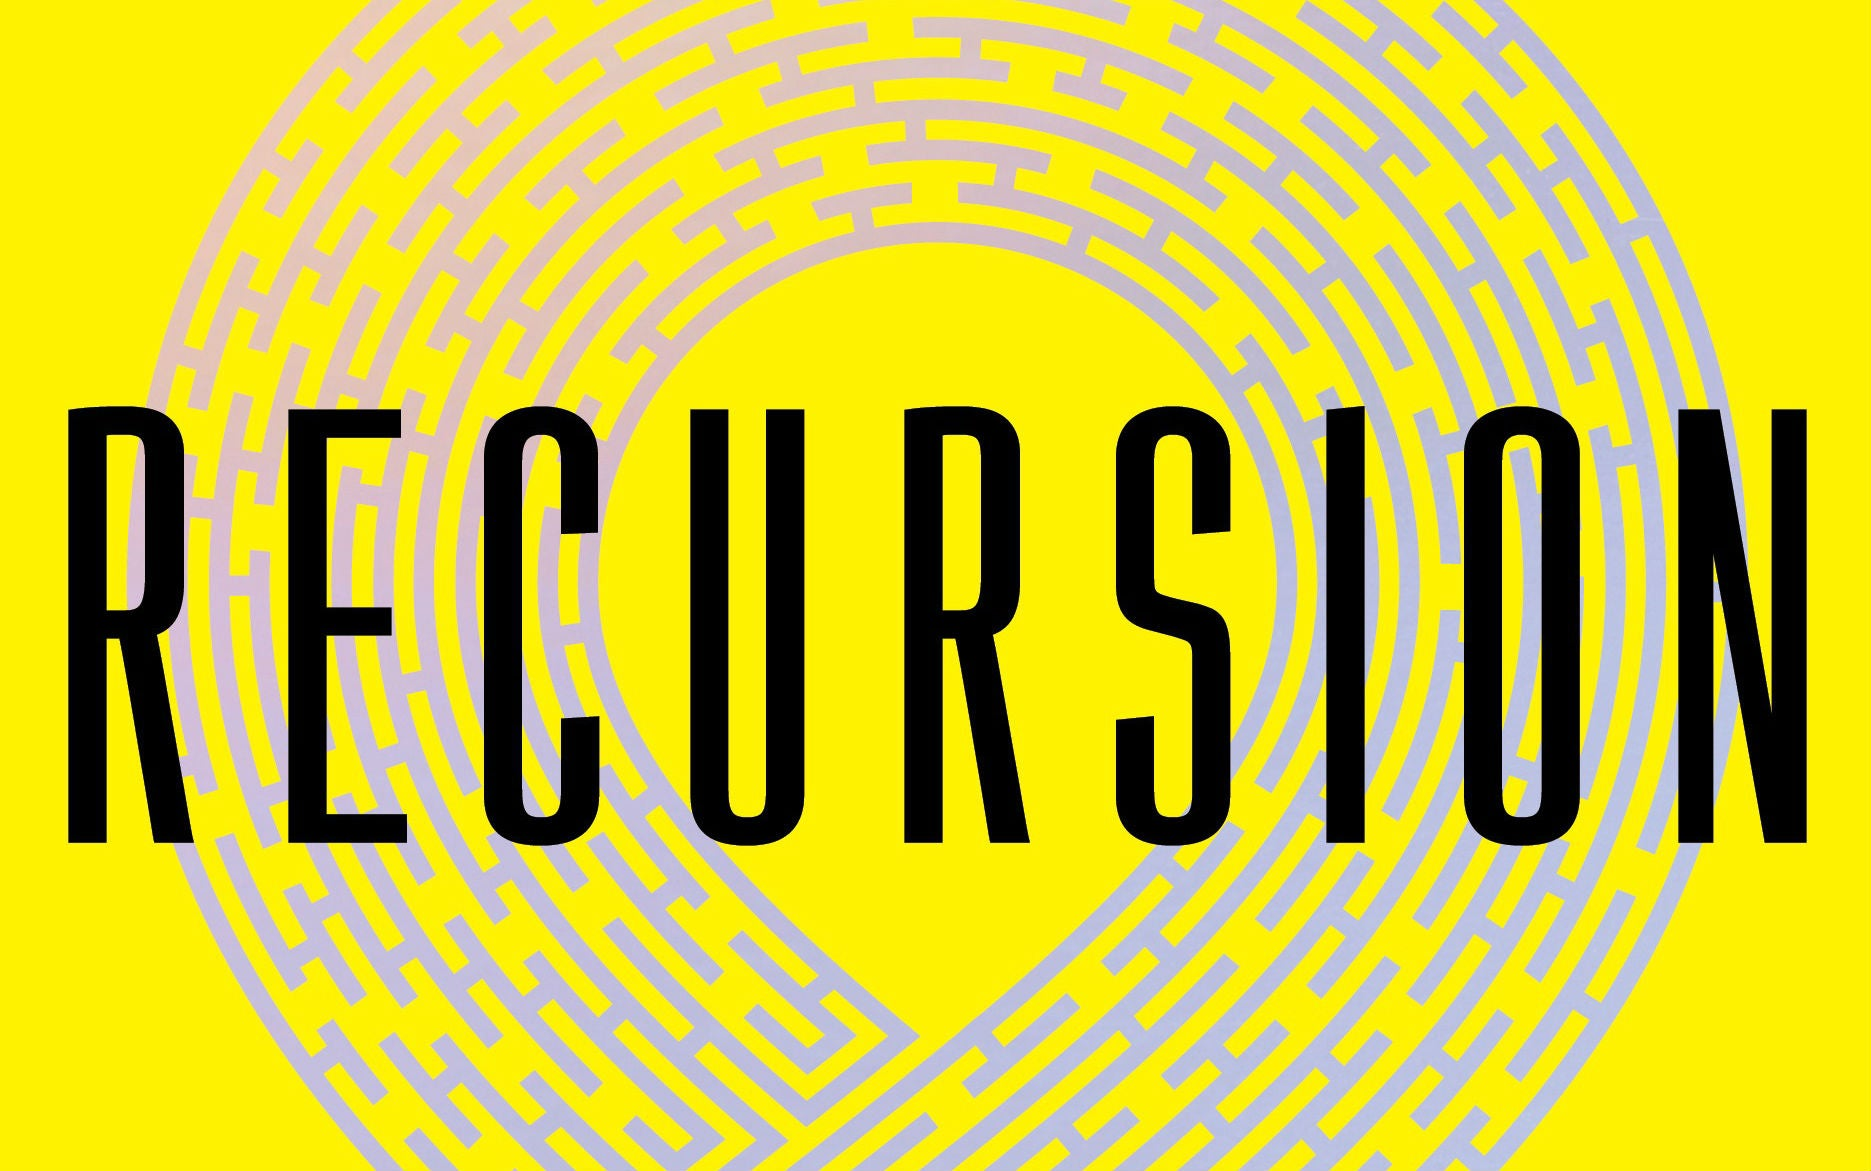 False Memories Haunt A Desperate Woman In This Excerpt From Blake Crouch's Sci-Fi Thriller Recursion